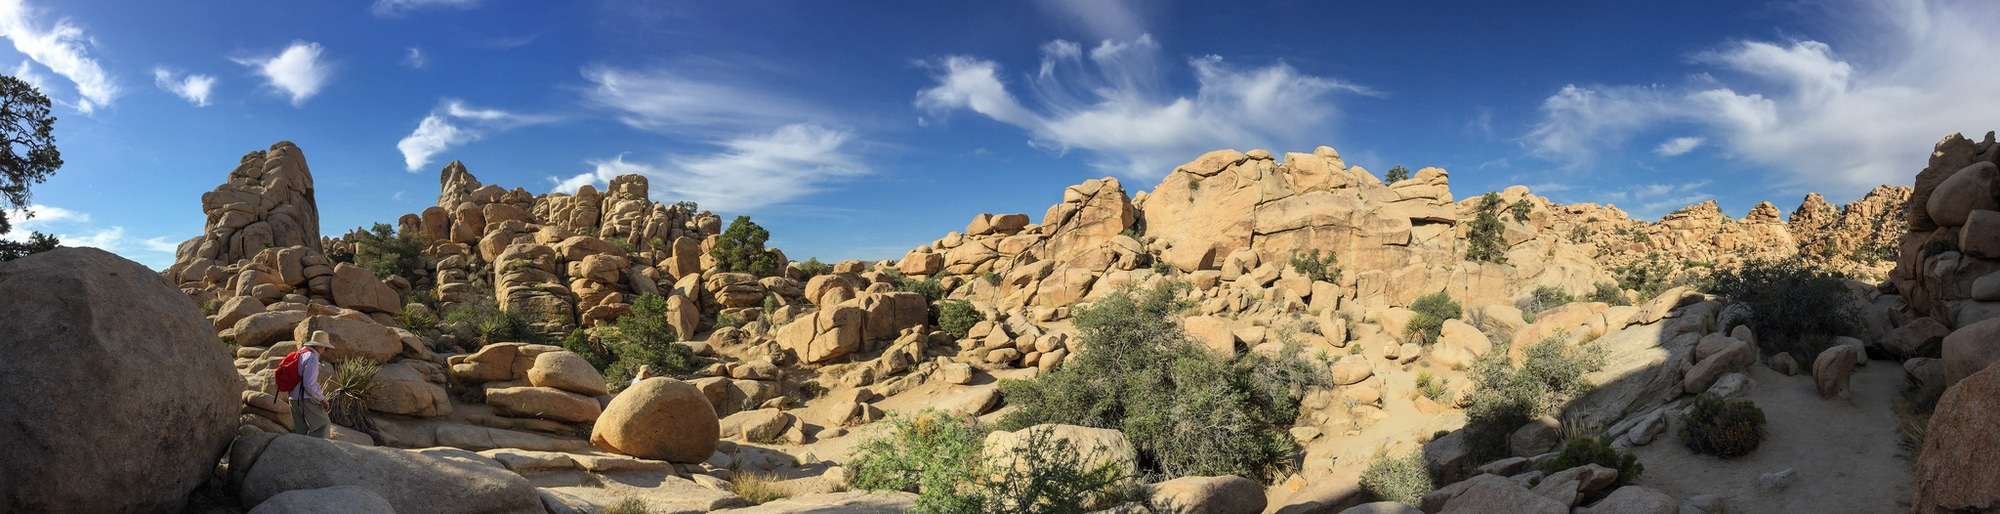 Headed to Joshua Tree National Park for the first time? Here's details on the 3 best Joshua Tree hikes, plus info on where to stay during your trip. // Hidden Valley